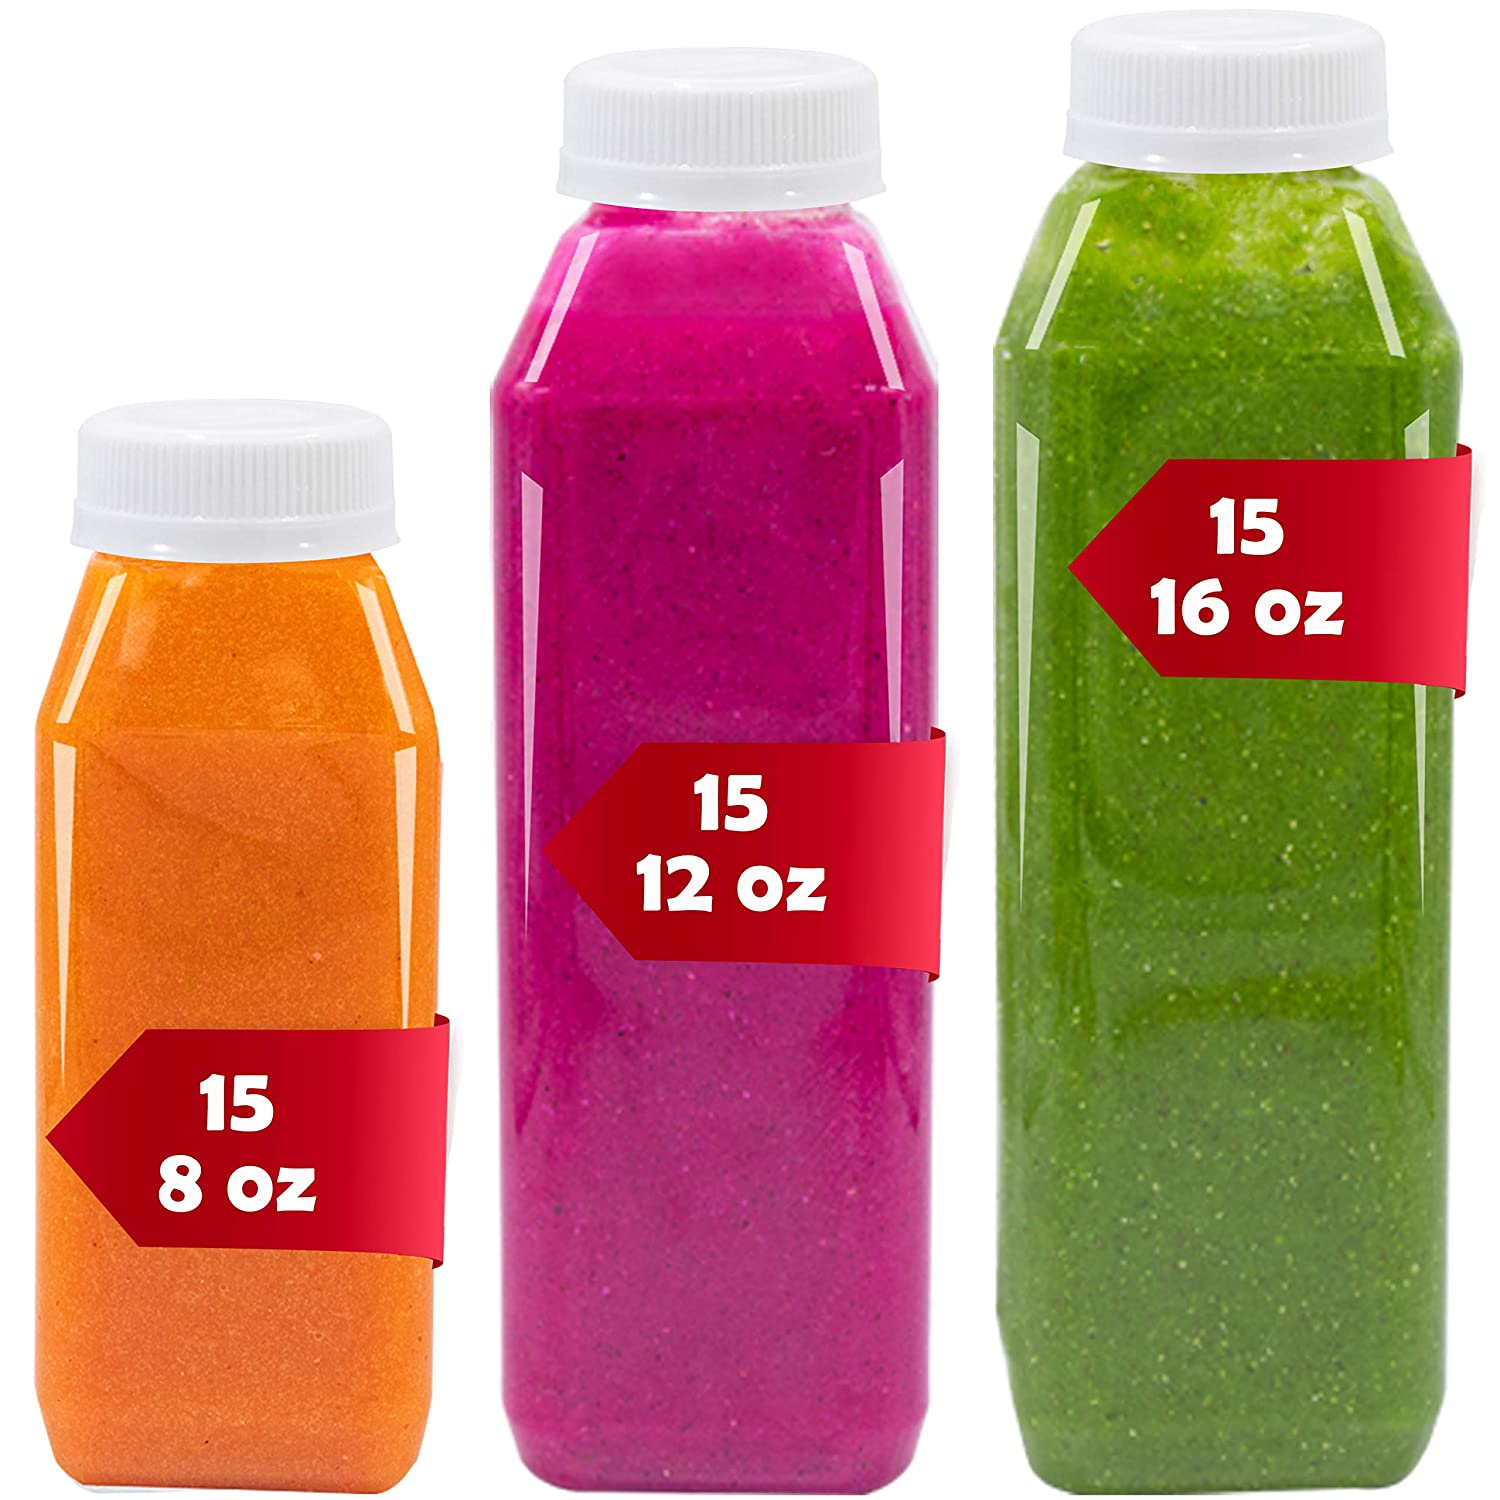 45 Pack of Empty Juice Bottles, Plastic Bottles with caps,15 of 8 oz, 15 of 12 oz, 15 of 16 oz